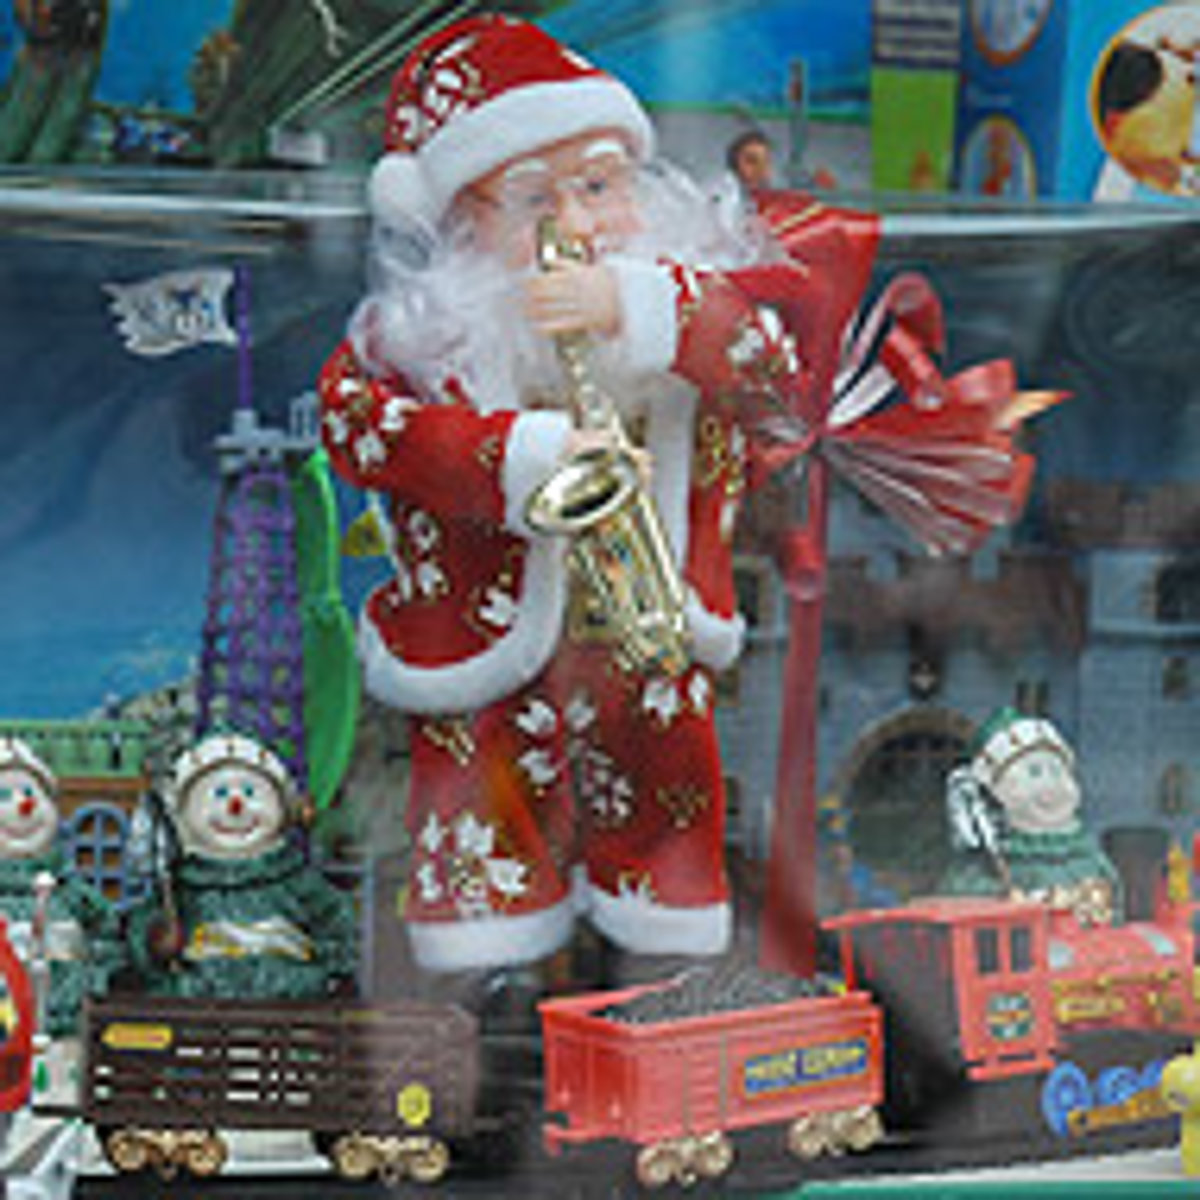 santa claus grandfather frost or little jesus - Santa Claus And Jesus 2